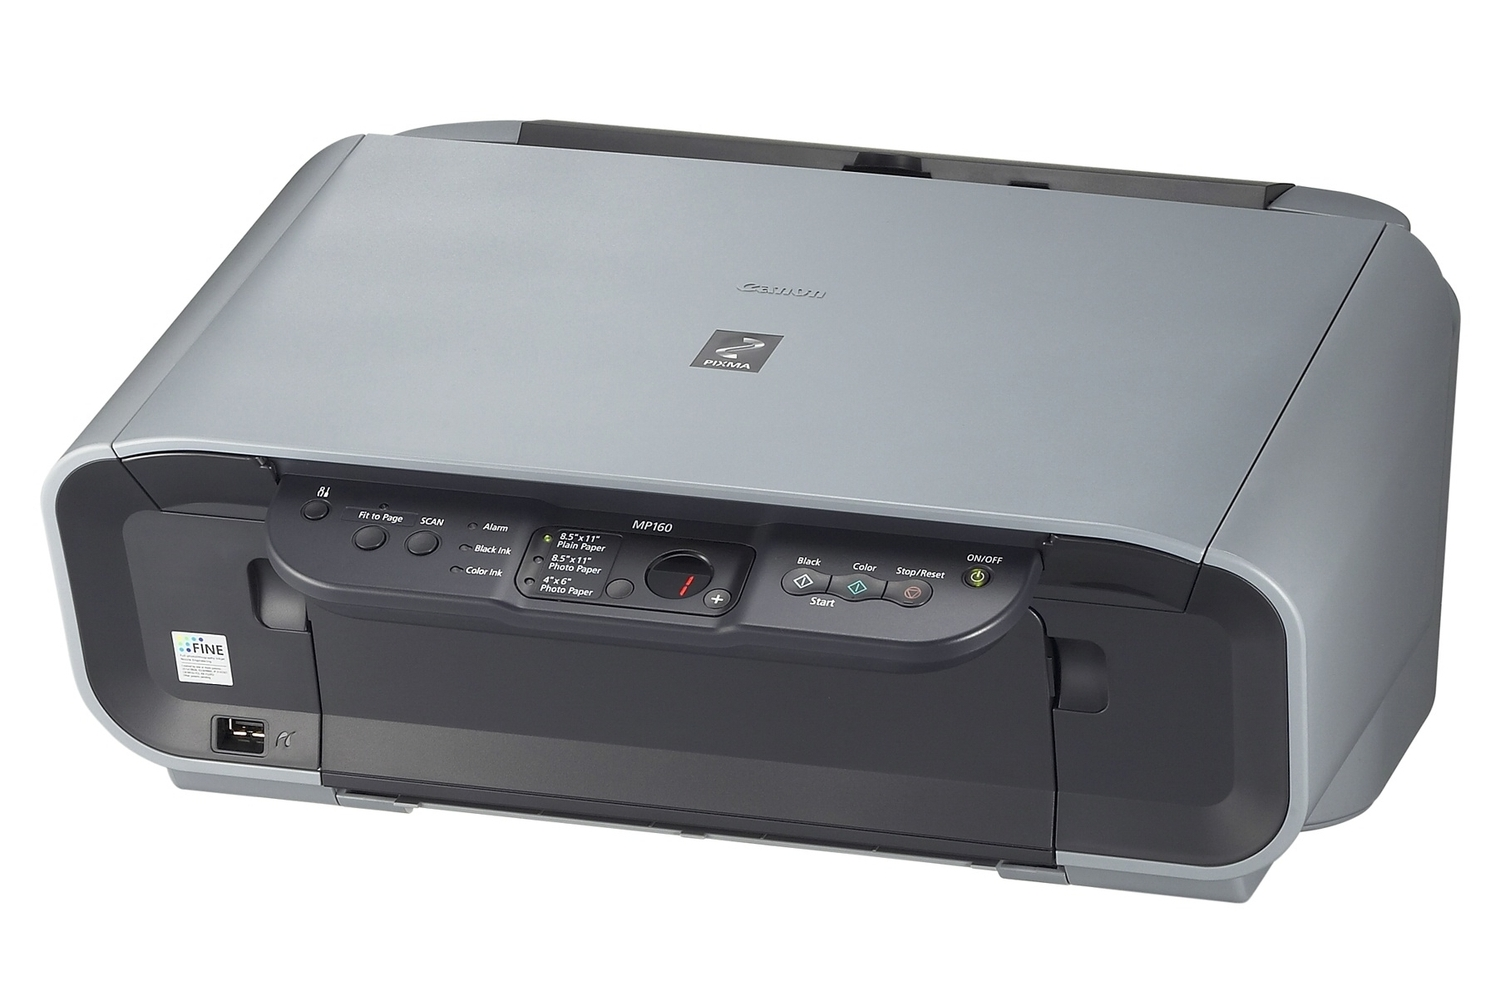 canon australia cameras printers multifunction devices